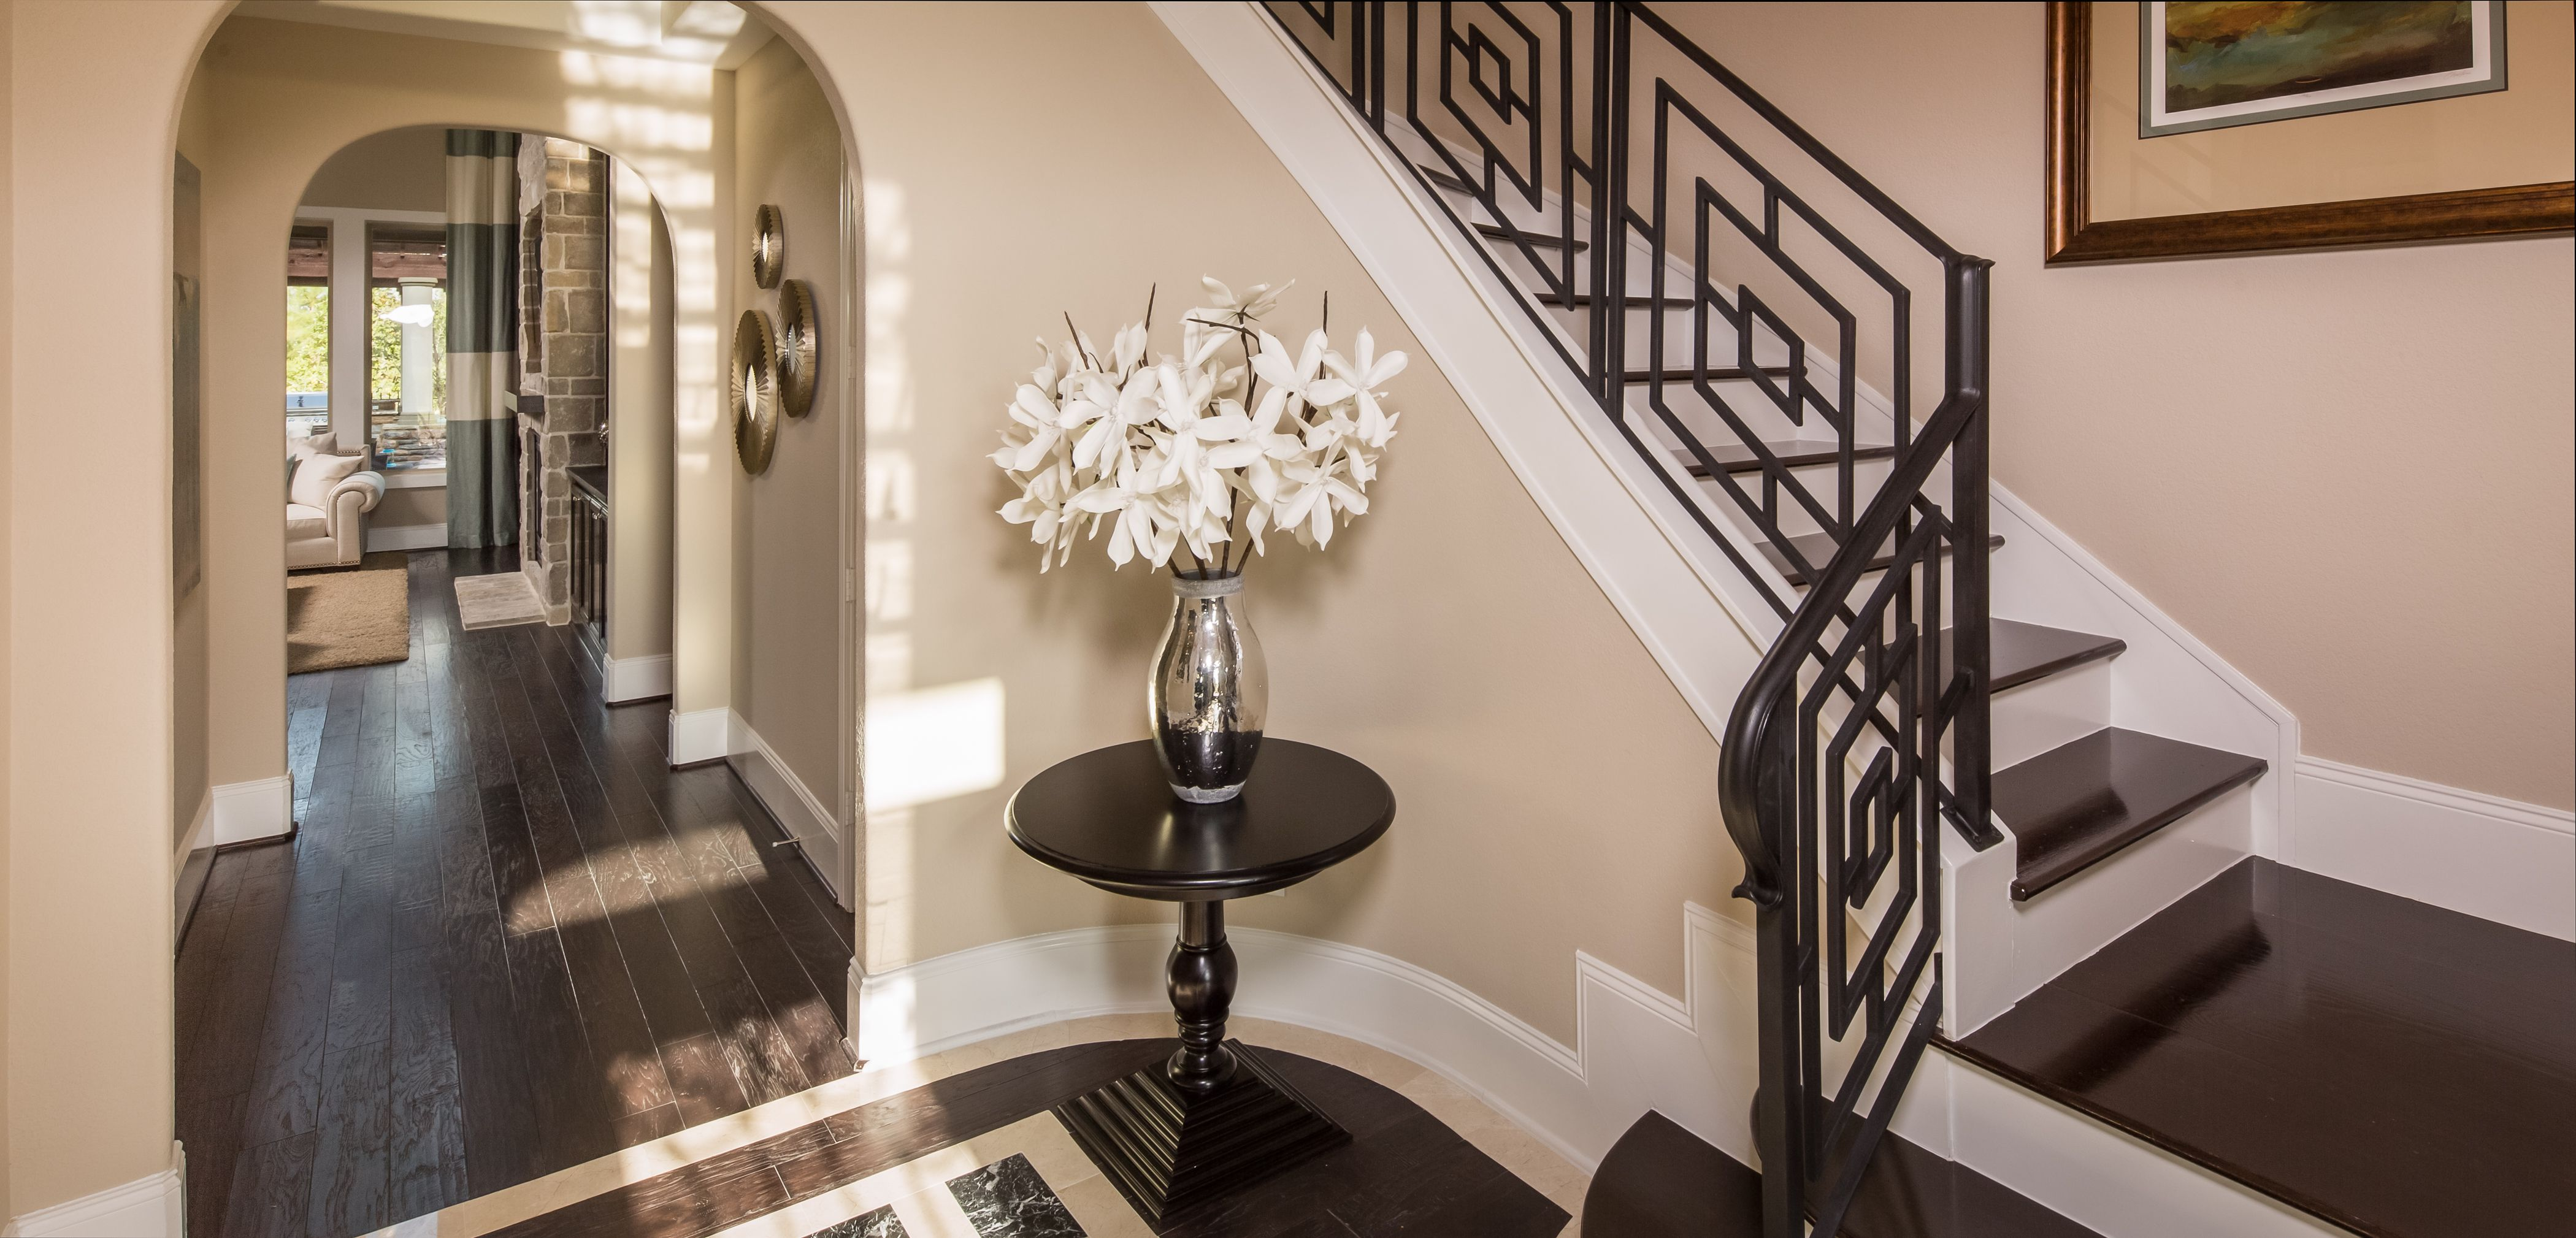 Additional photo for property listing at Southern Trails - Montelucia 11912 Maybrook Court Pearland, Texas 77584 United States